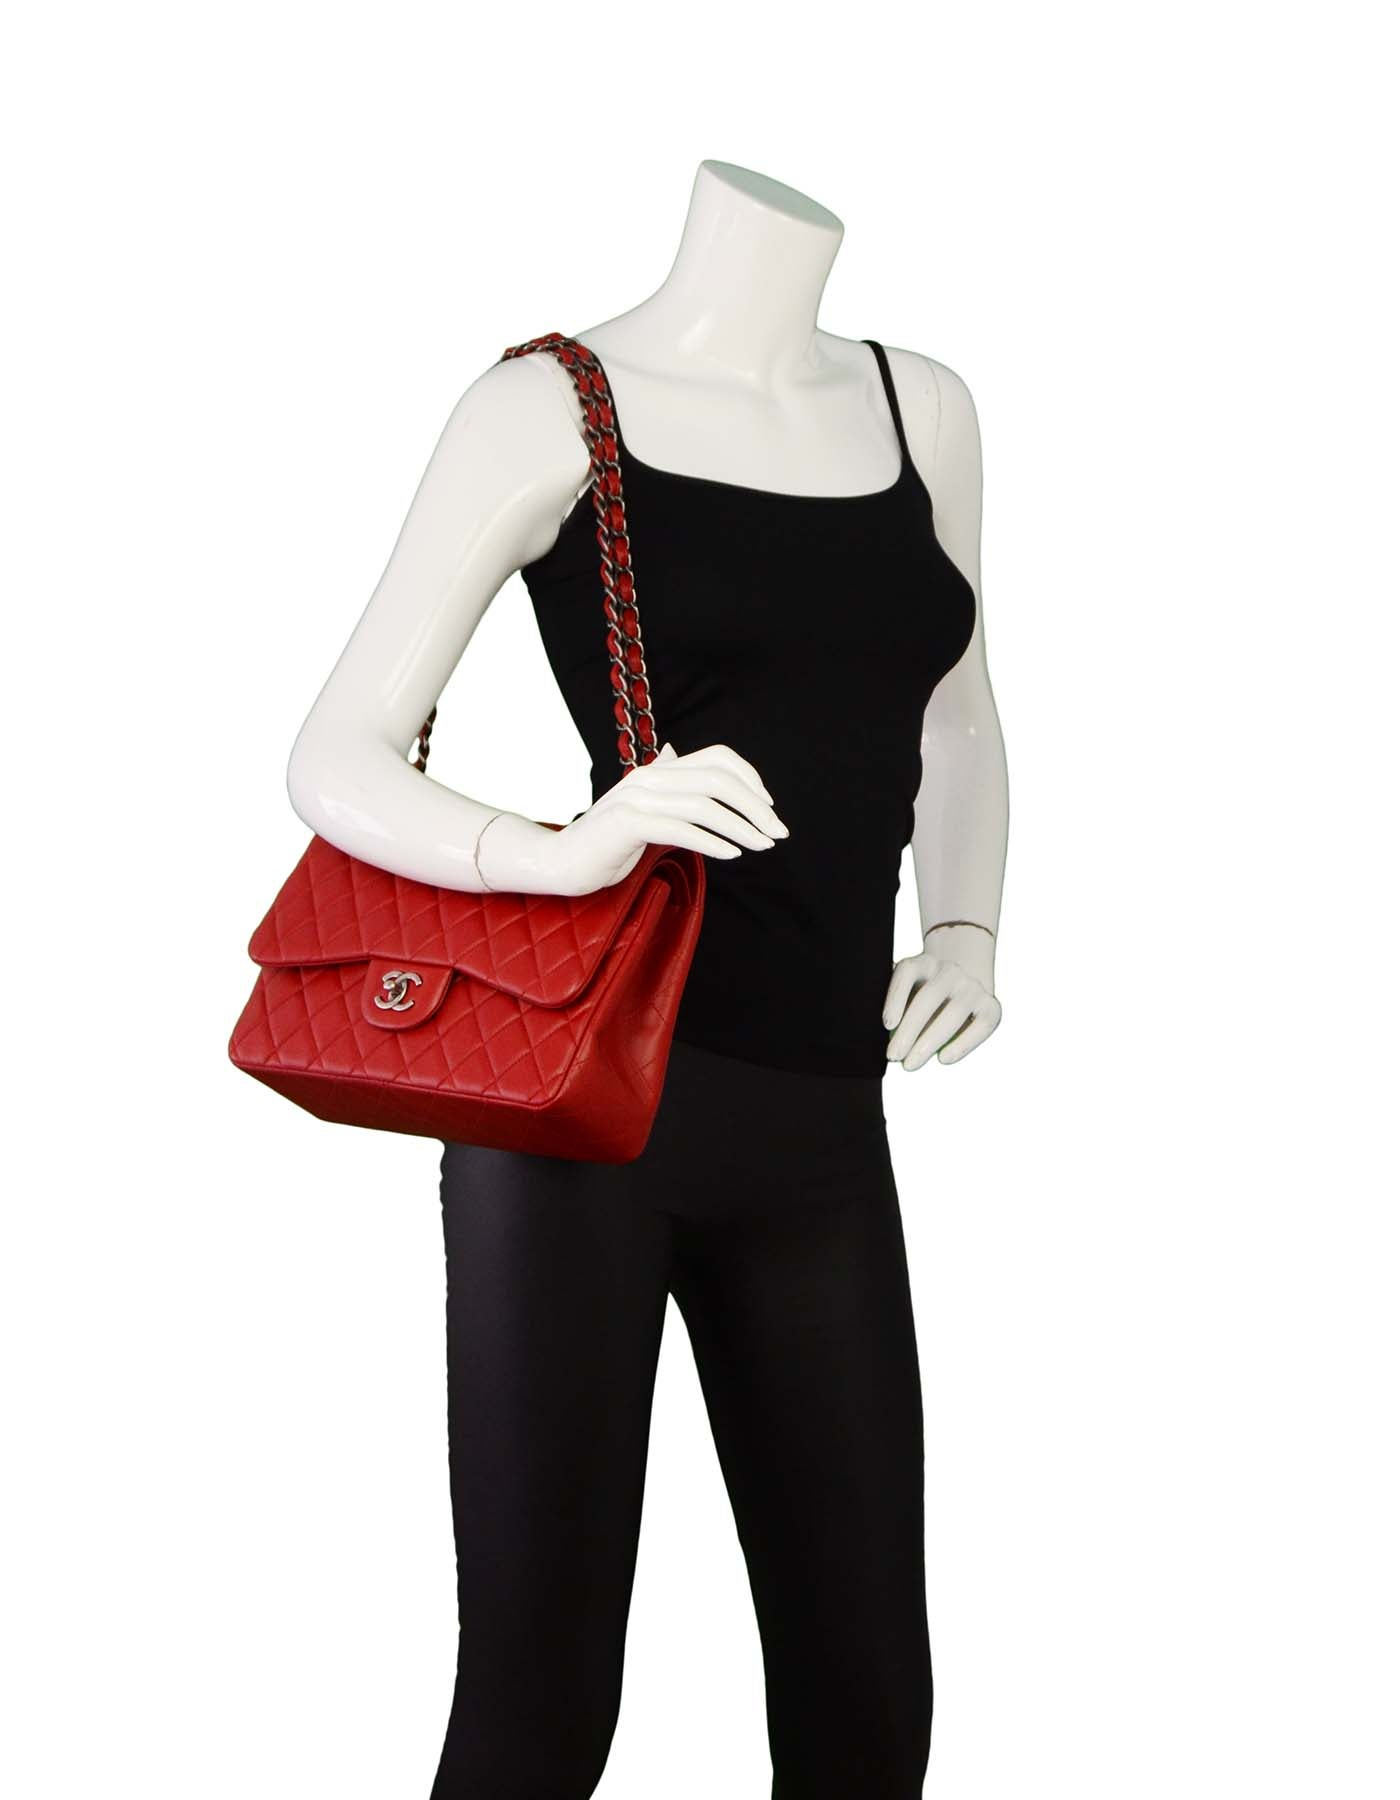 17addf58a03b Chanel Red Quilted Lambskin Leather Double Flap Jumbo Bag with RHW at  1stdibs